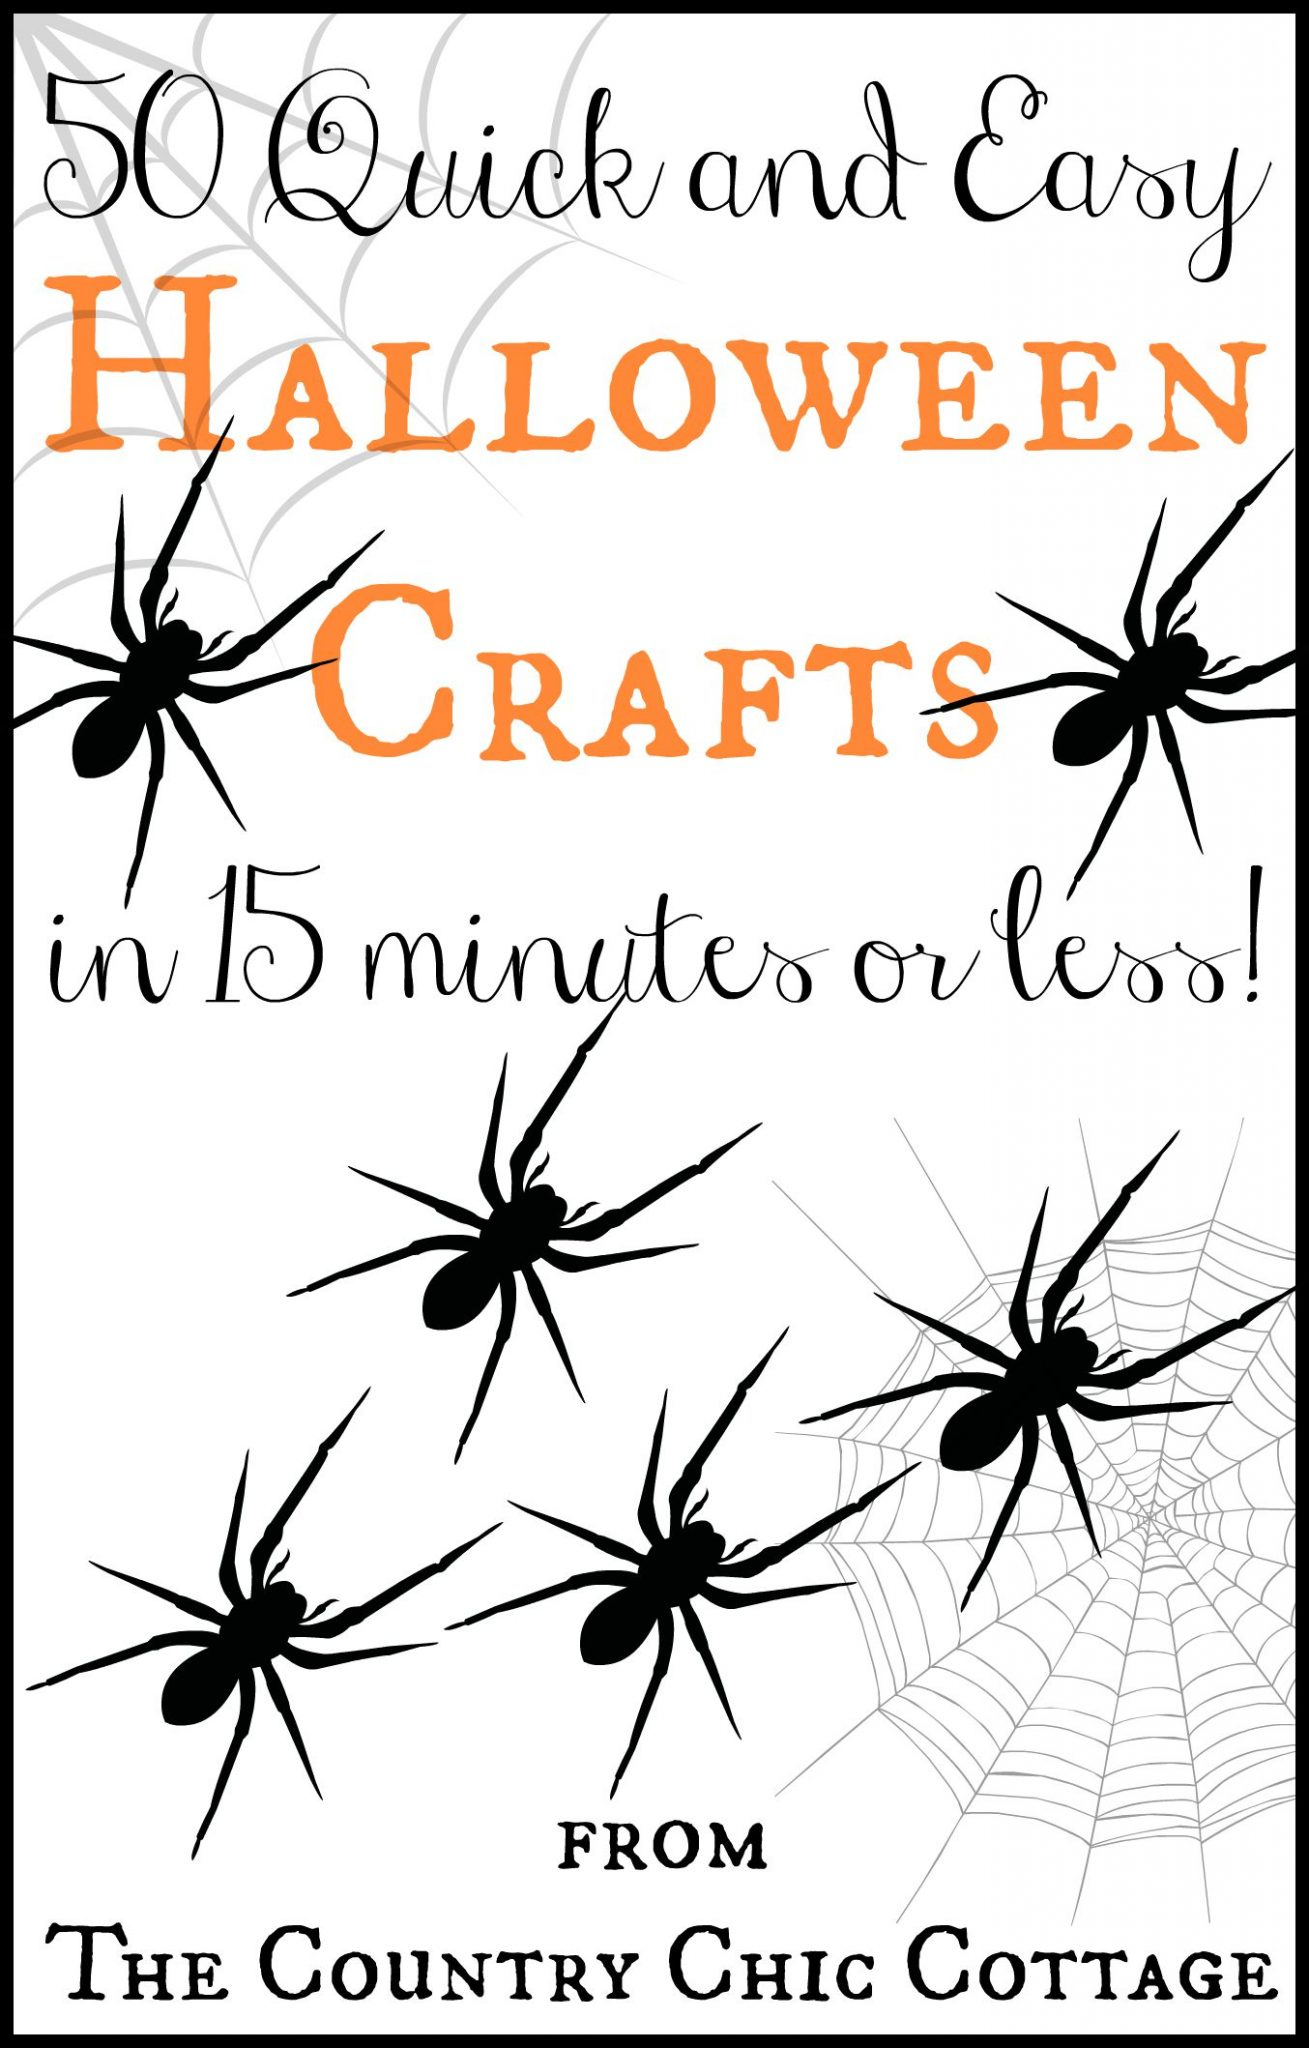 50 quick and easy Halloween crafts that all take 15 minutes or less to make!